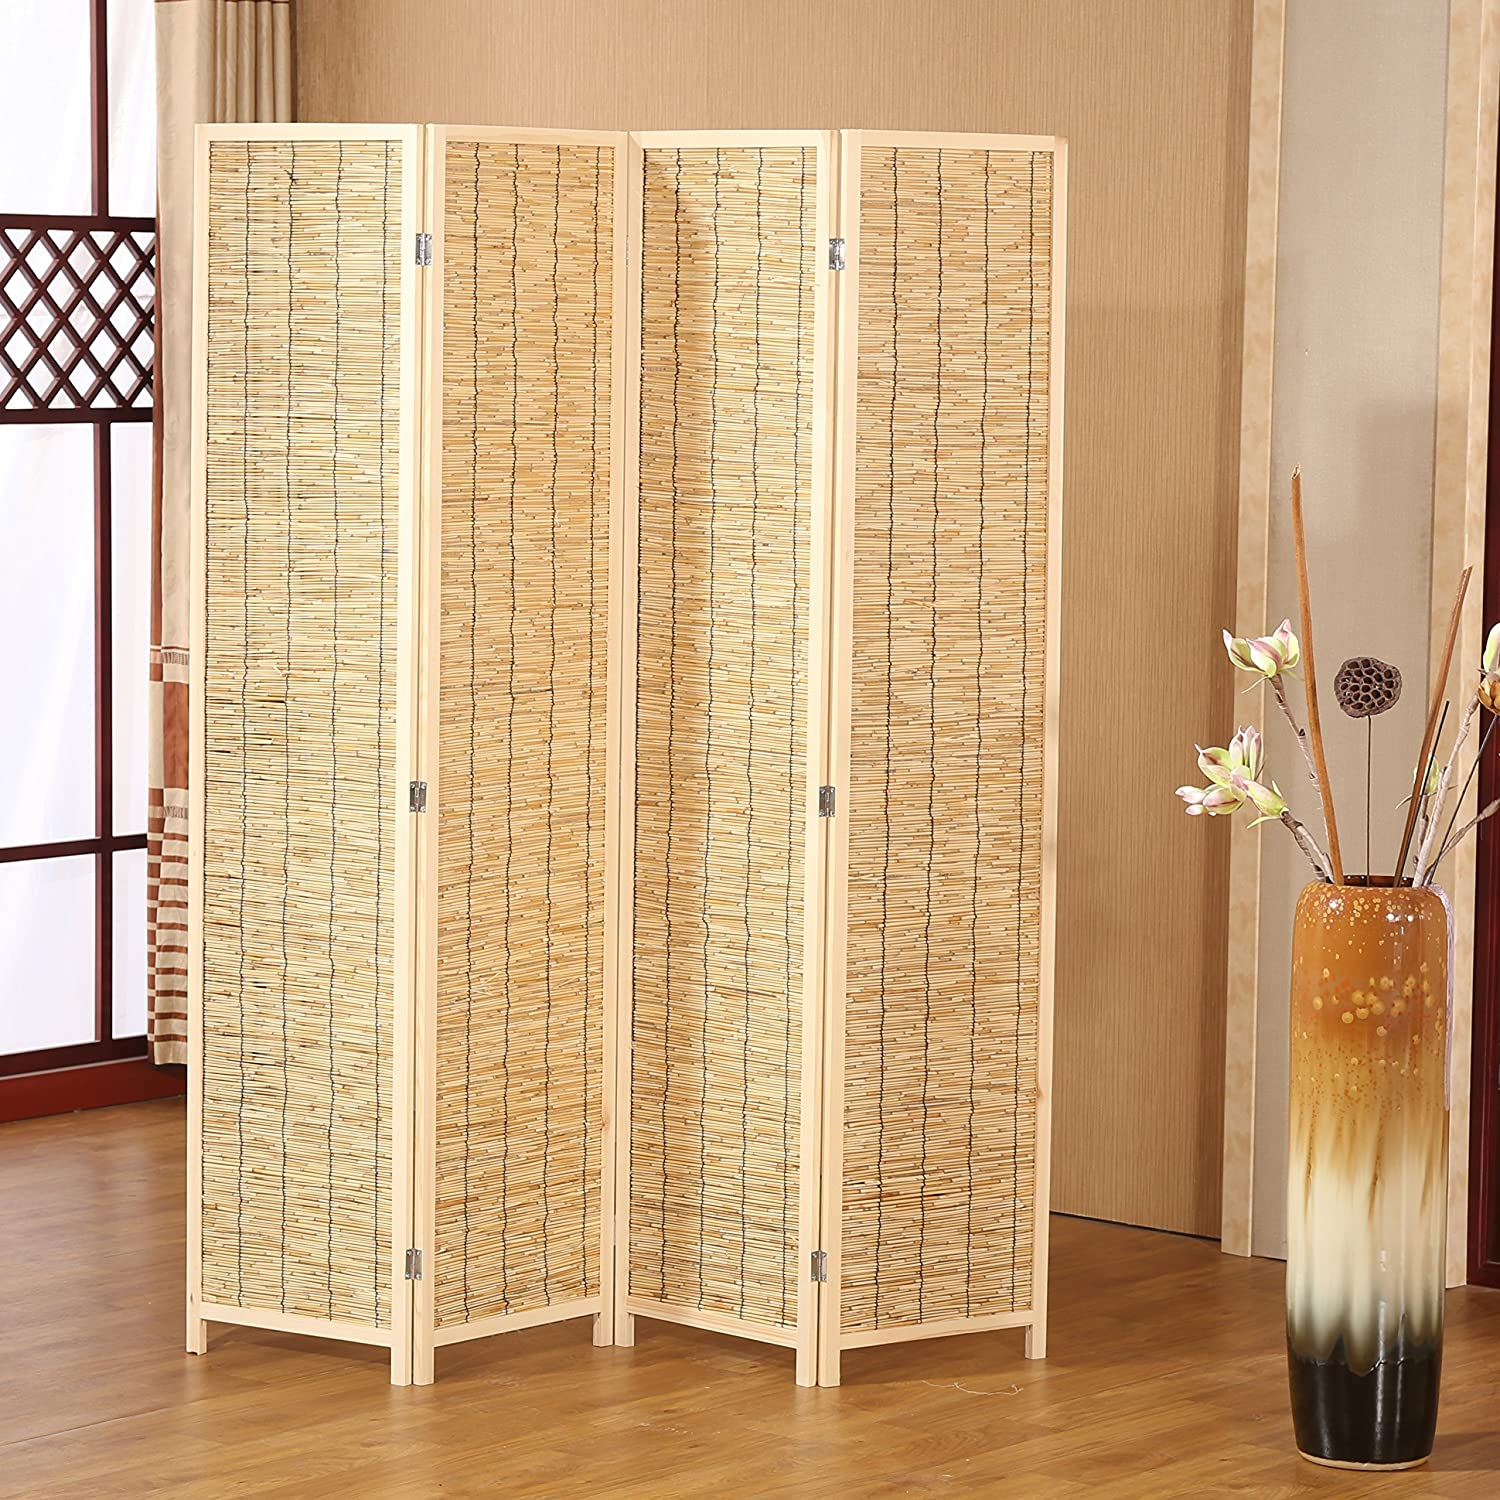 Decorative panel wood bamboo folding room divider screen